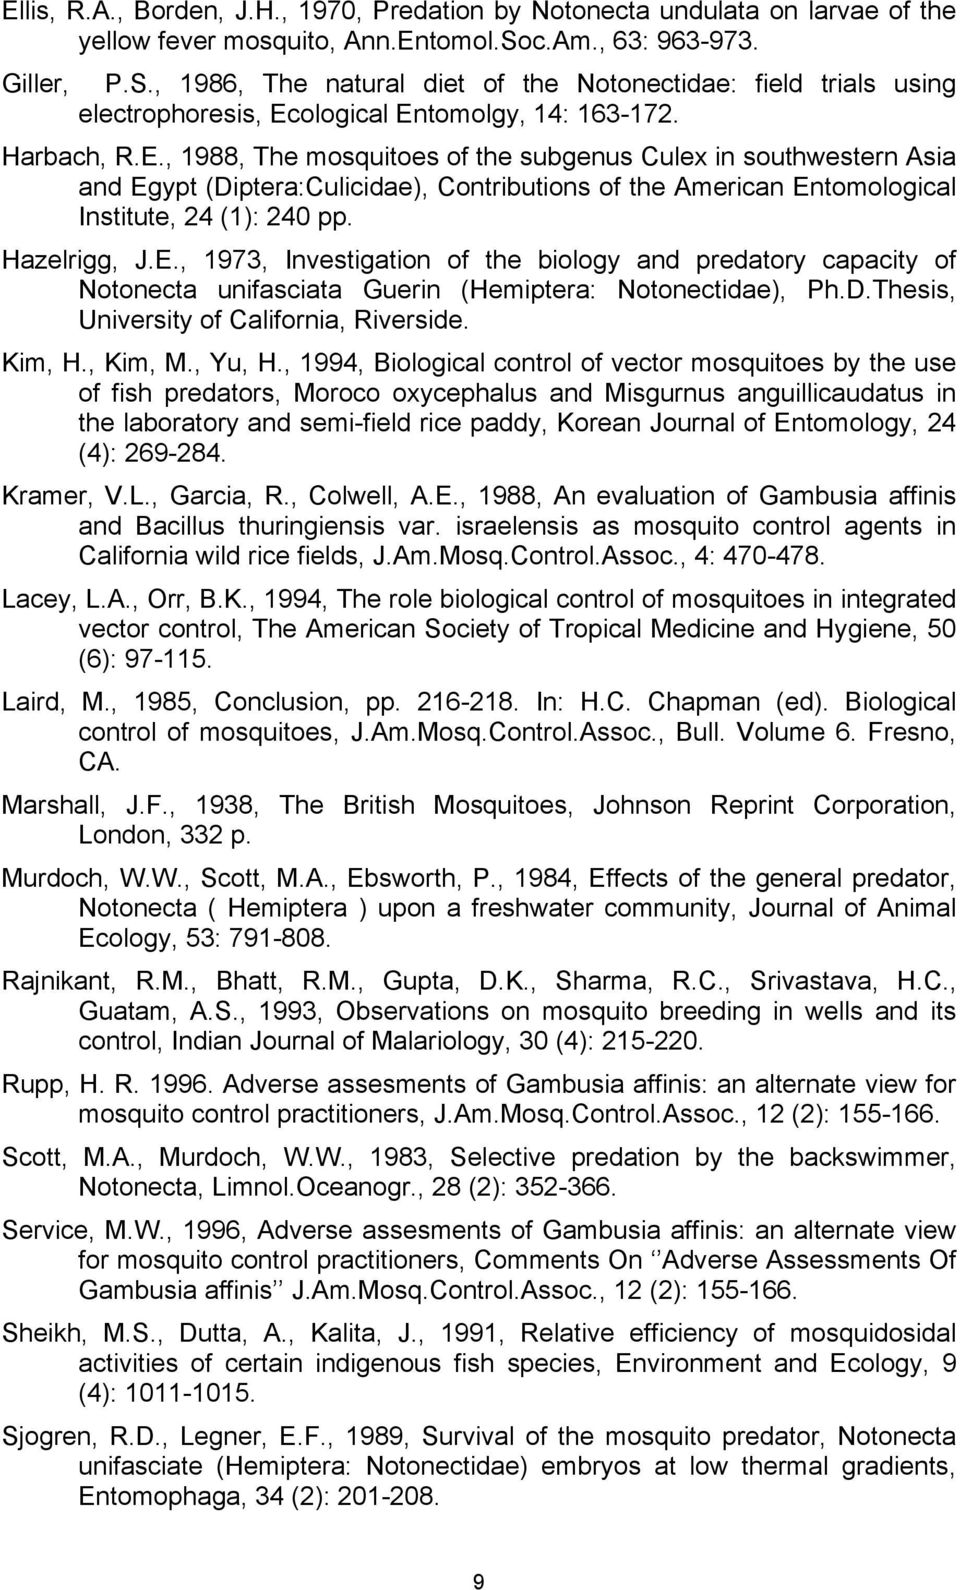 ological Entomolgy, 14: 163-172. Harbach, R.E., 1988, The mosquitoes of the subgenus Culex in southwestern Asia and Egypt (Diptera:Culicidae), Contributions of the American Entomological Institute, 24 (1): 240 pp.